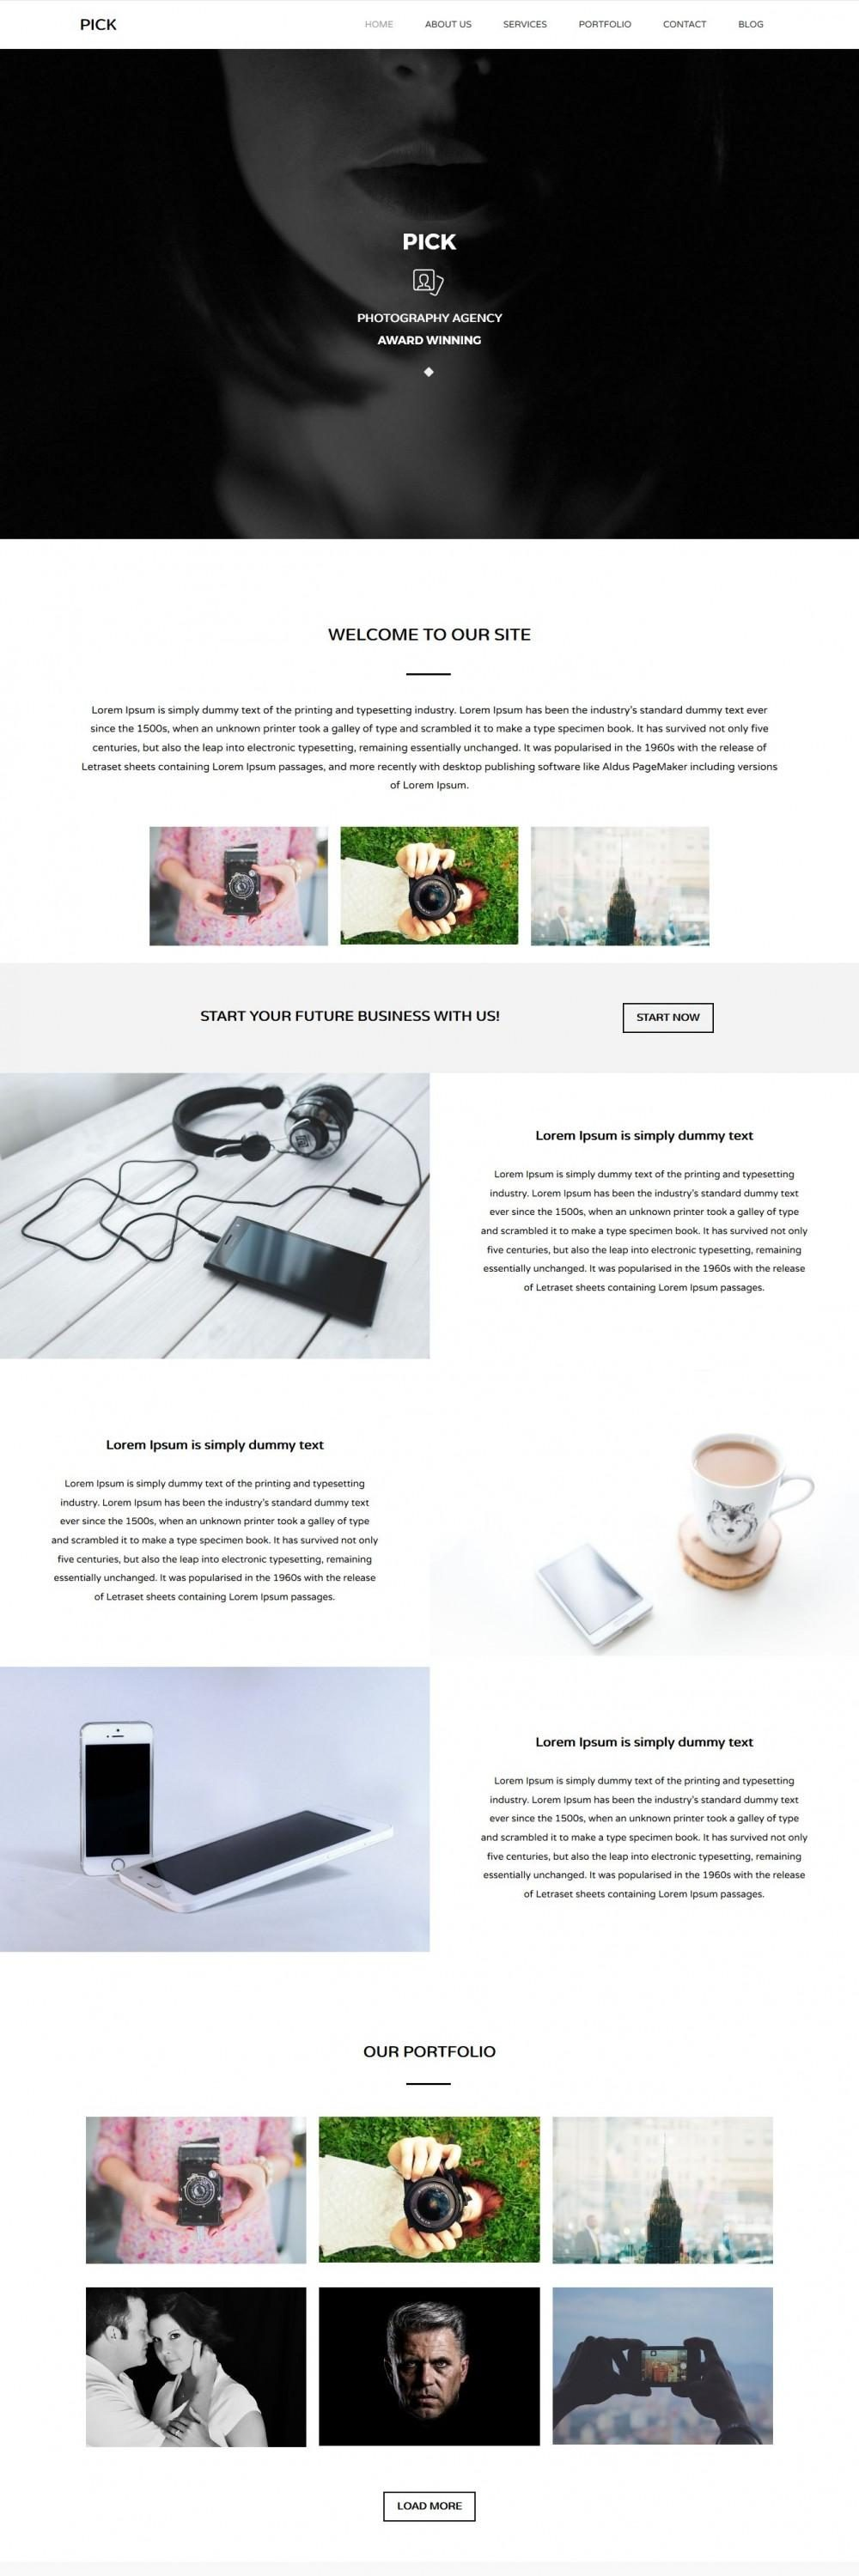 Pick Professional Photography Drupal Theme